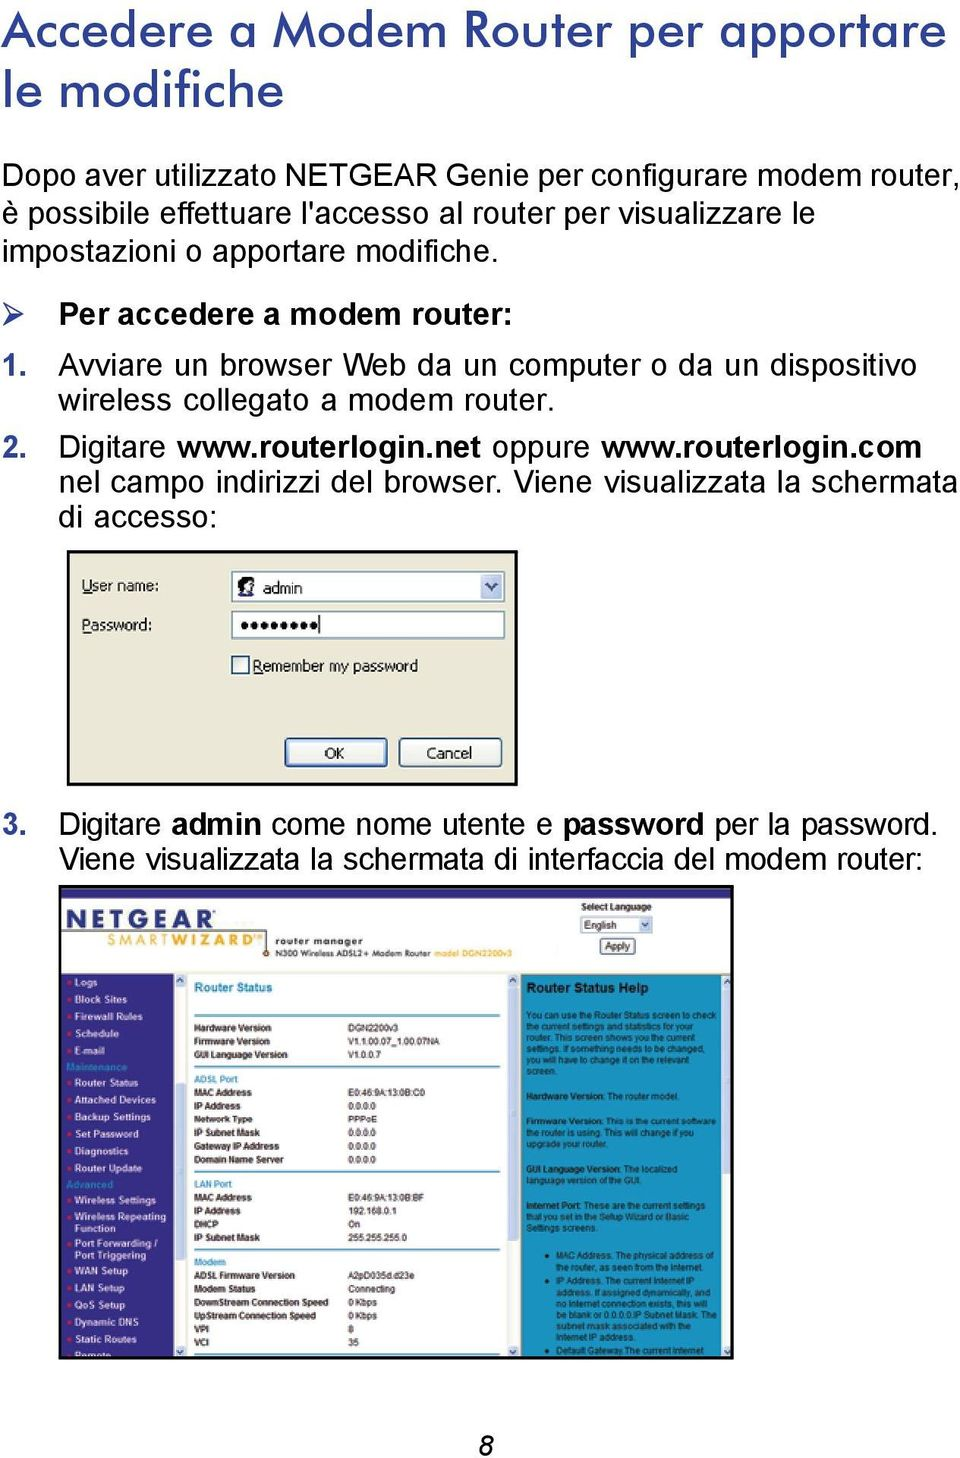 Avviare un browser Web da un computer o da un dispositivo wireless collegato a modem router. 2. Digitare www.routerlogin.